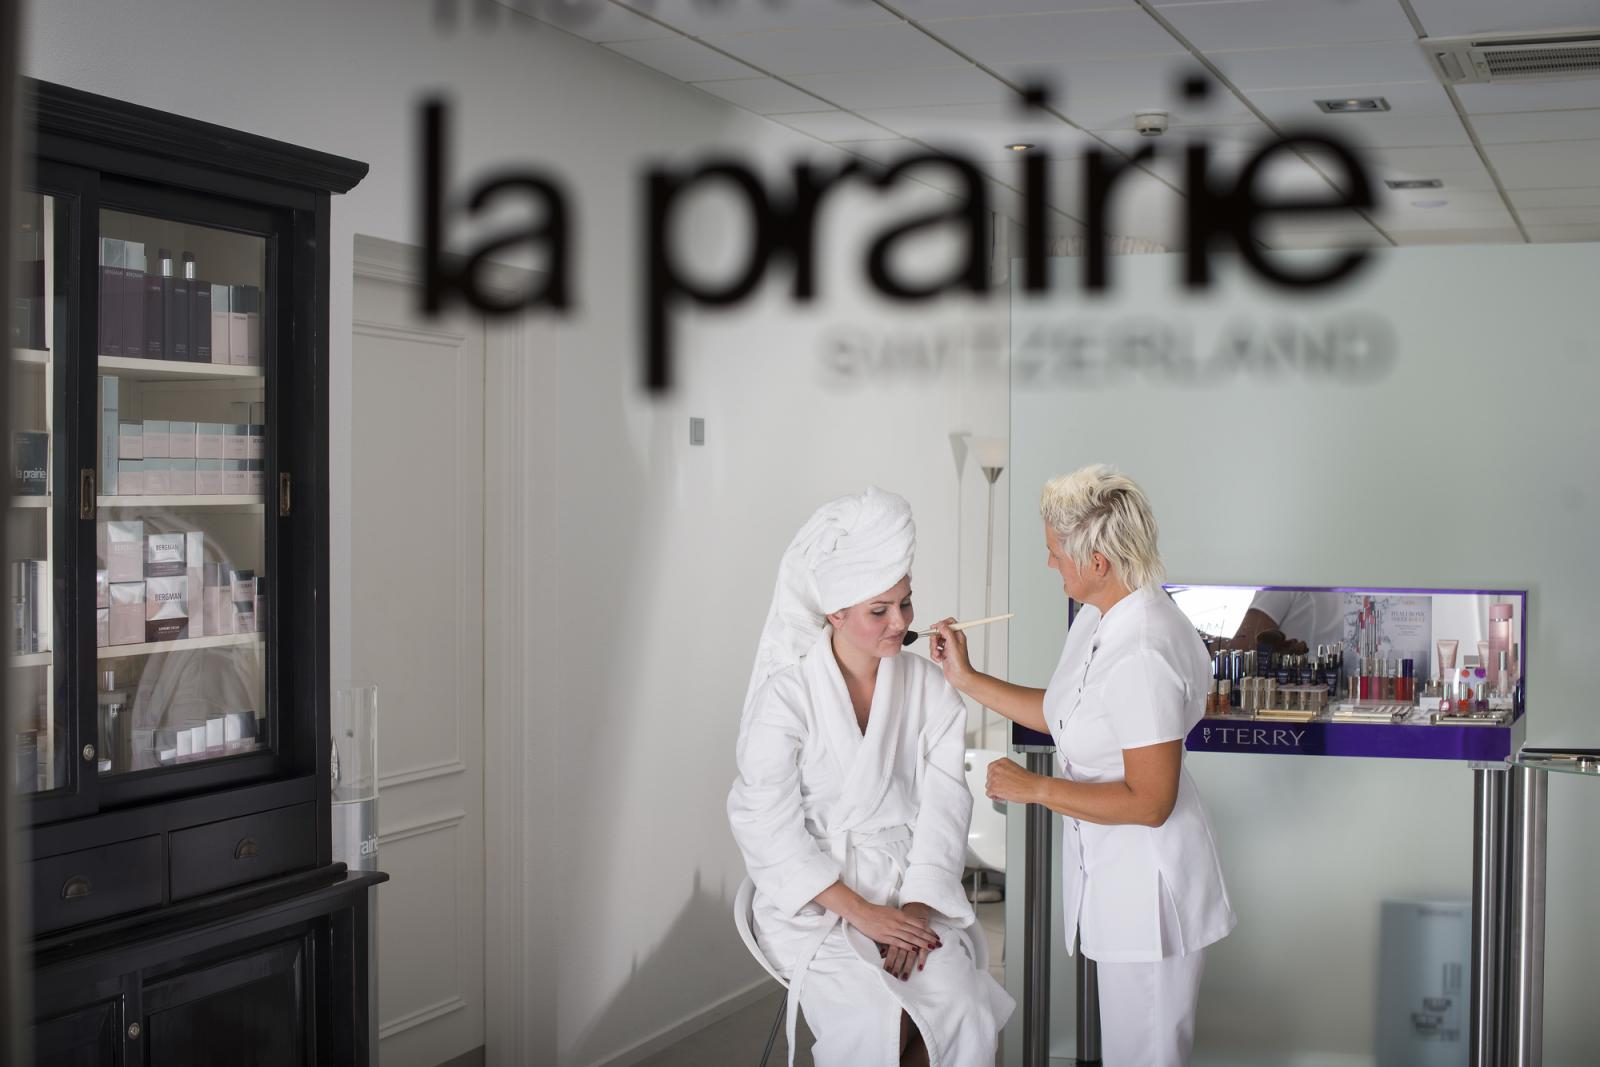 2-daags La Prairie Wellness Arrangement